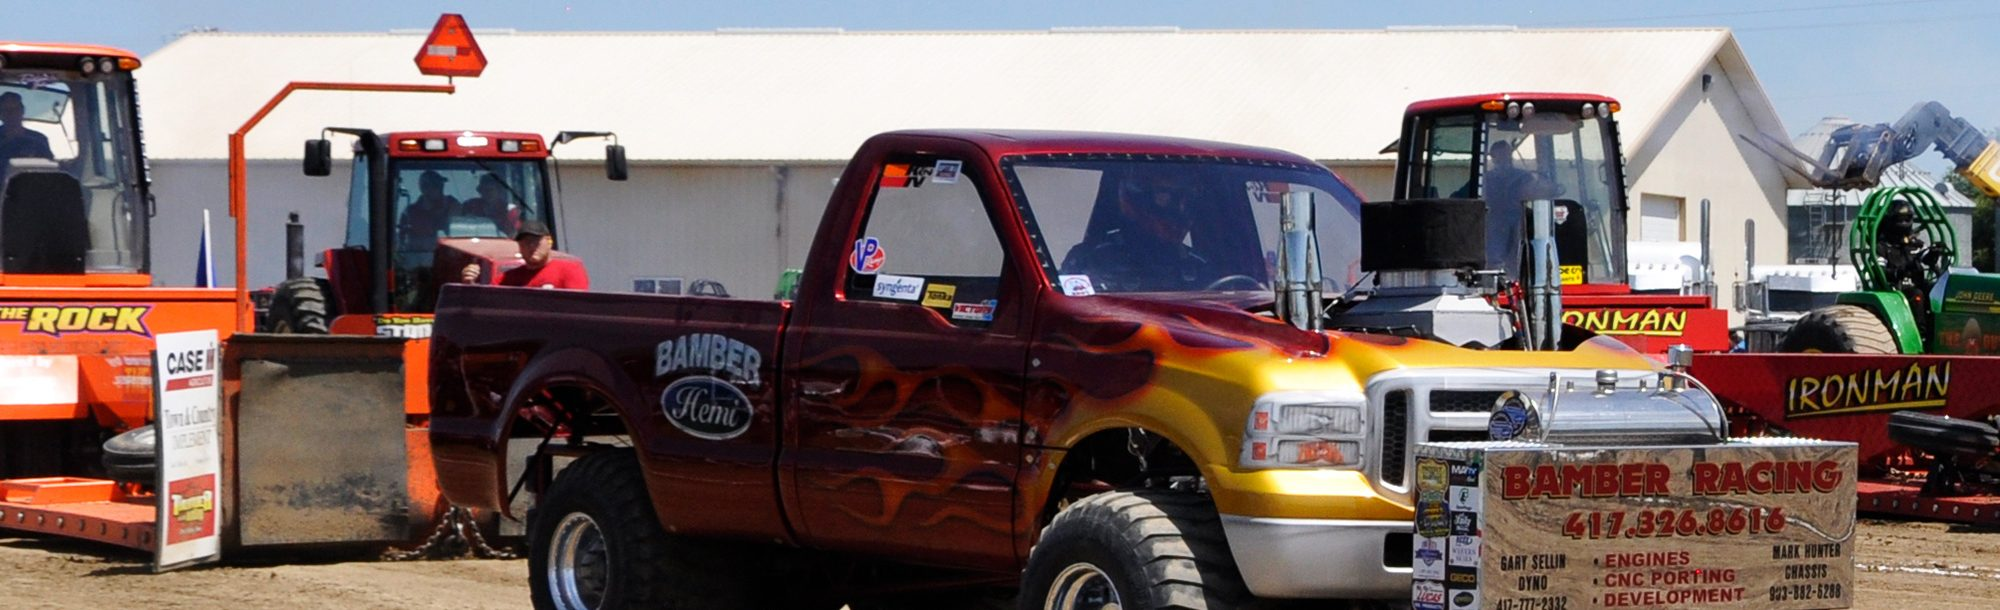 red flame truck